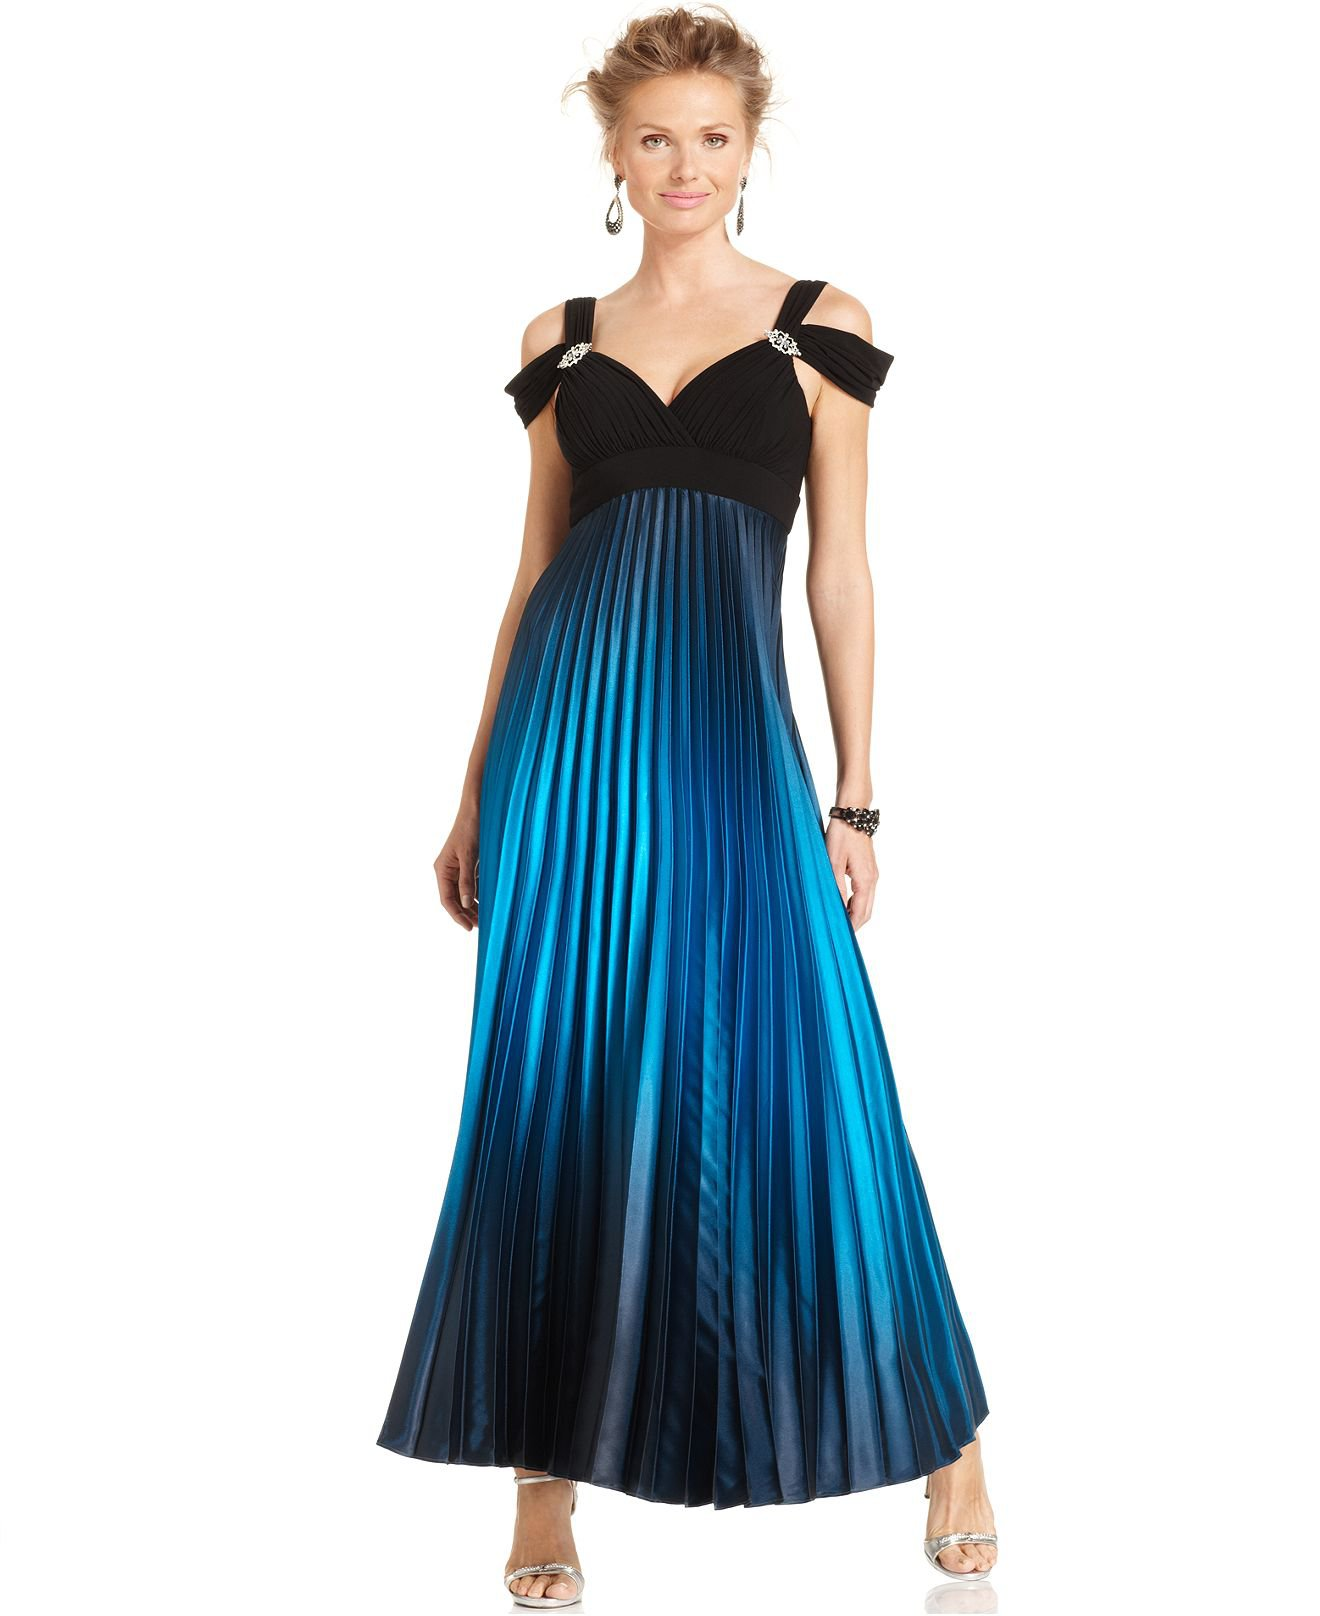 on detail naf maternity evening wear barns list maxi dresses dress blue strapless barn sale